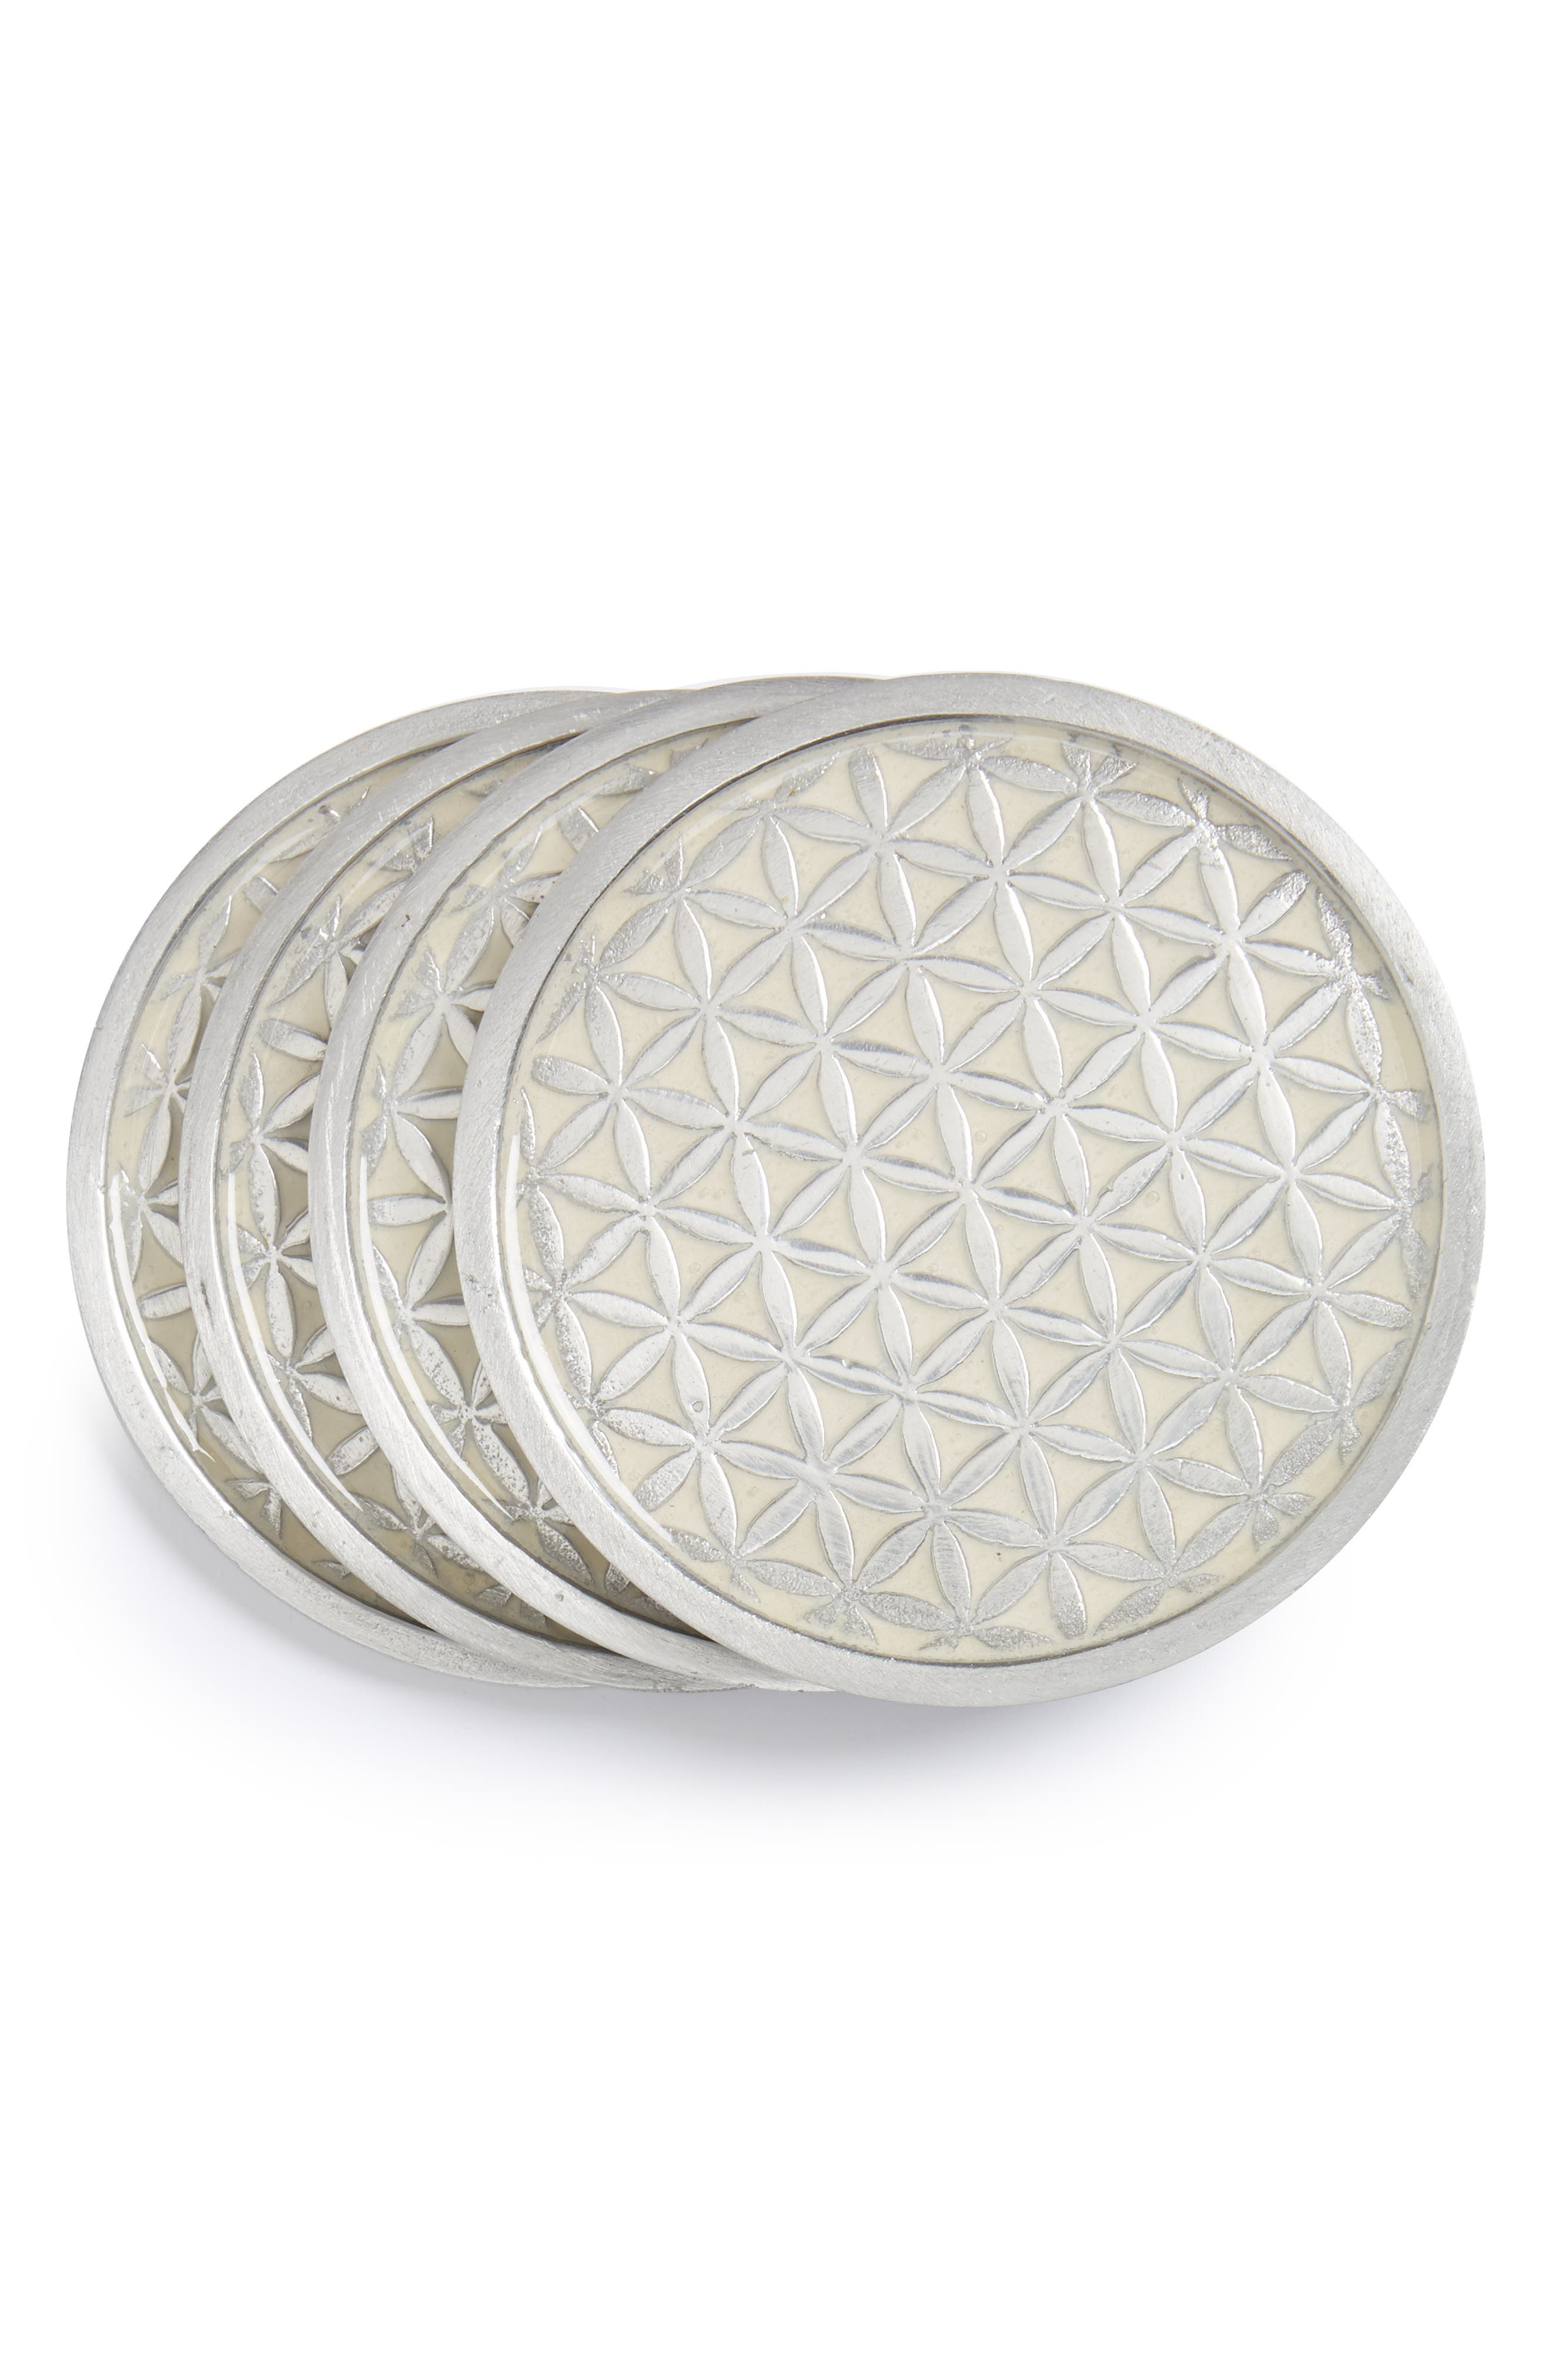 Alternate Image 1 Selected - Marigold Artisans Flower of Life Set of 4 Coasters